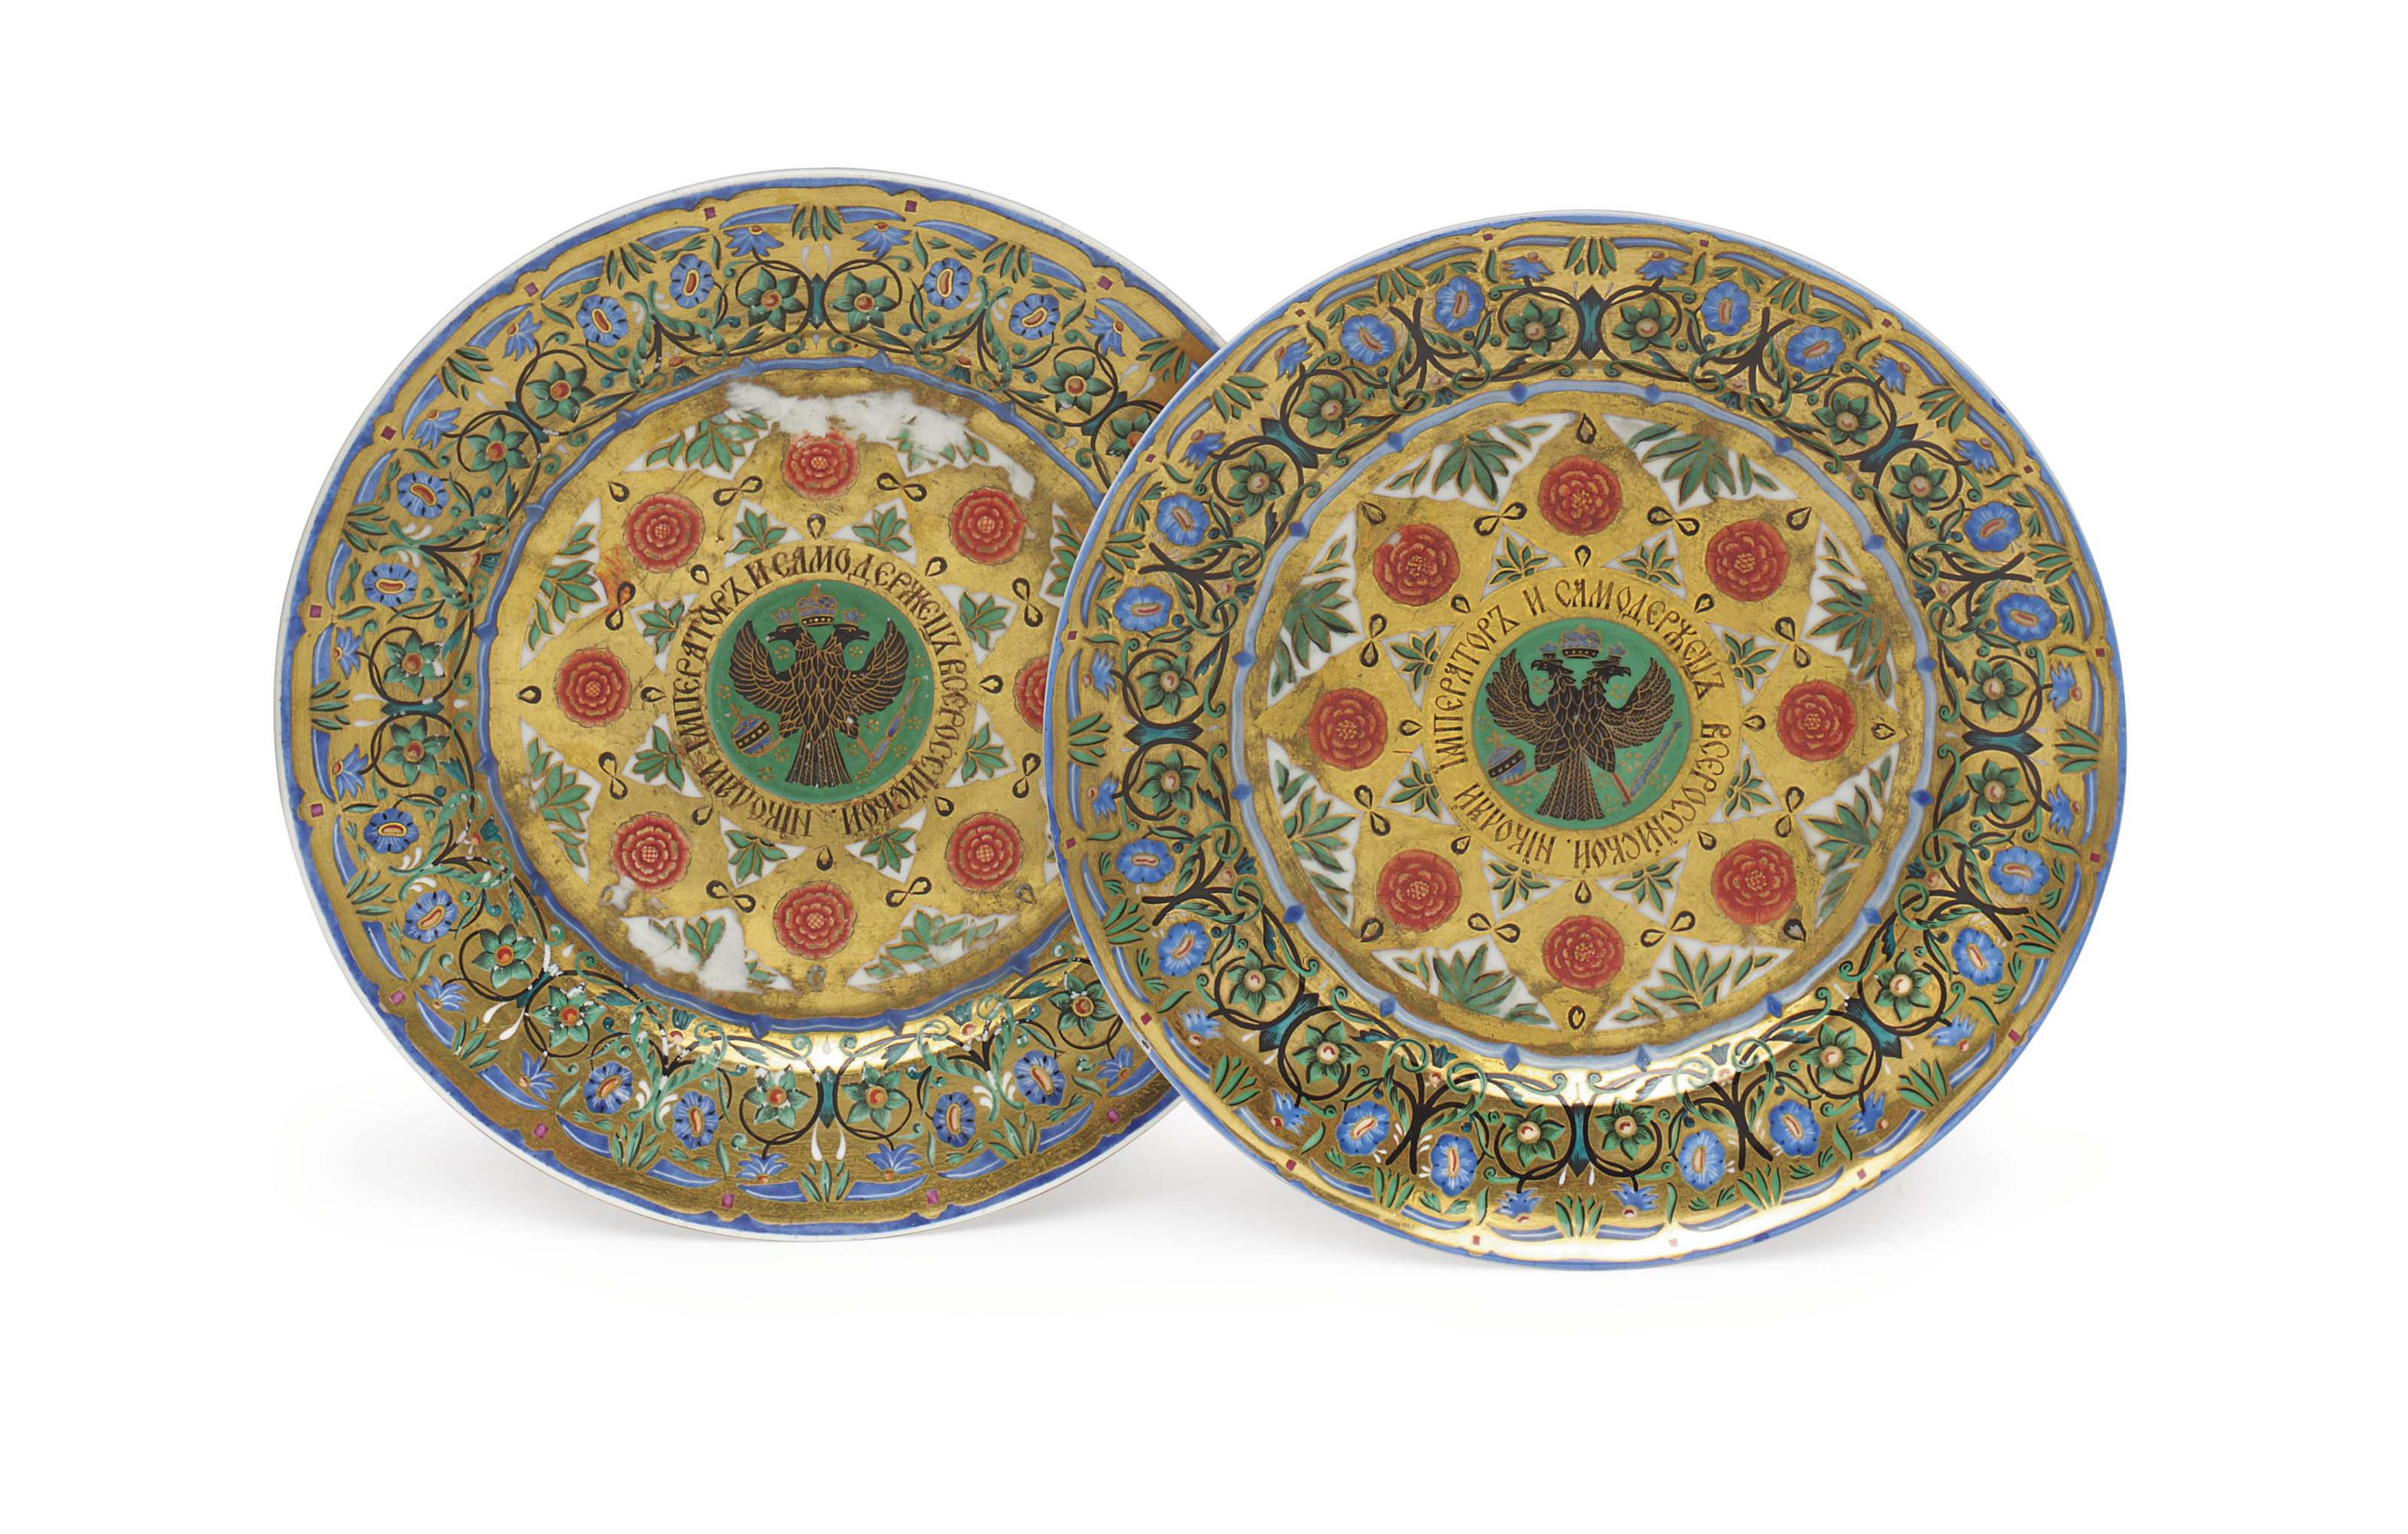 A PAIR OF RUSSIAN PORCELAIN DE  sc 1 st  Christieu0027s & A PAIR OF RUSSIAN PORCELAIN DESSERT PLATES FROM THE KREMLIN SERVICE ...